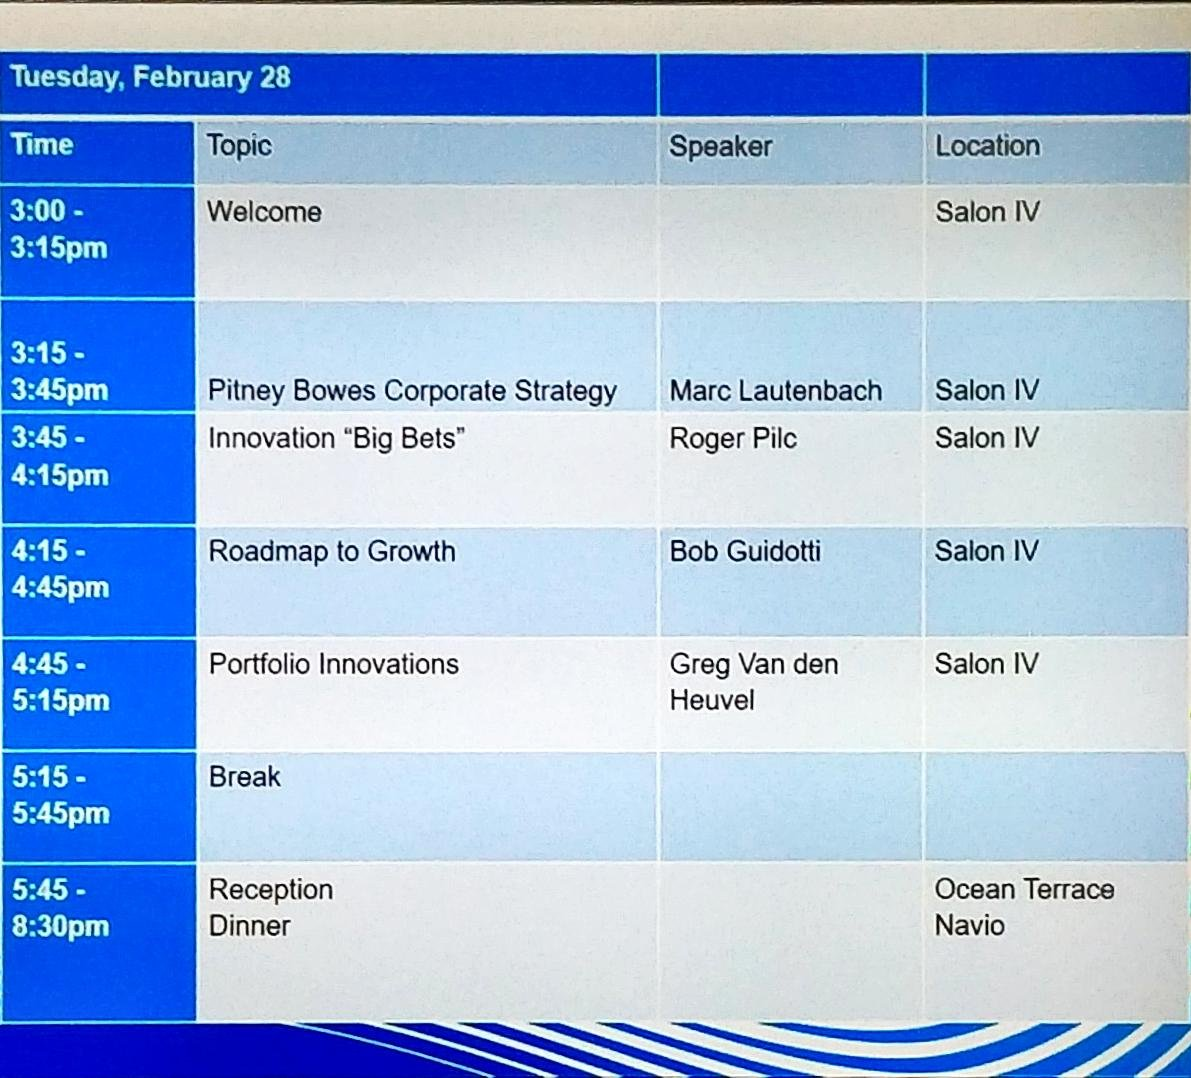 What's ahead today at #PBTechAnalysts https://t.co/Sw9idAD5MQ